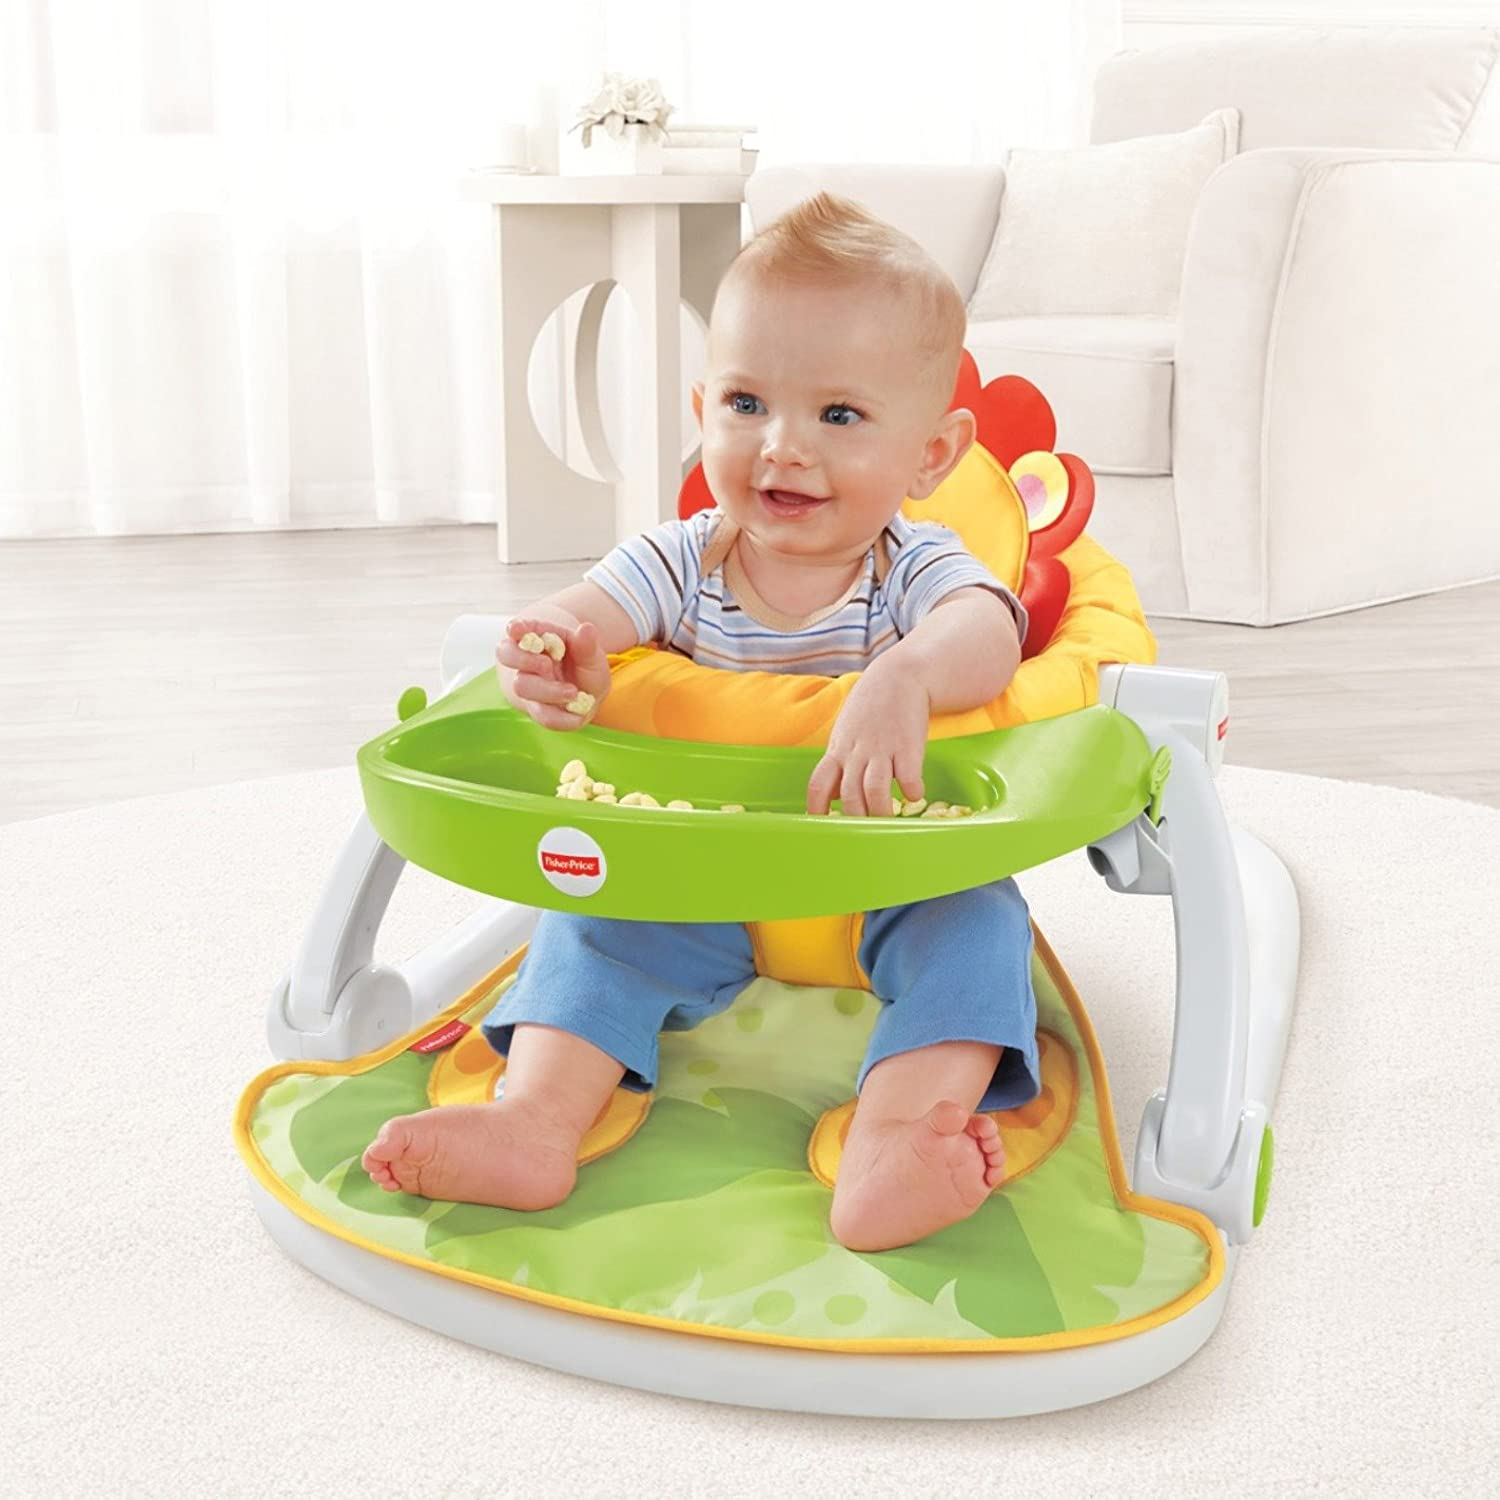 Fisher Price Sit Me Up Floor Seat with Tray Amazon Baby